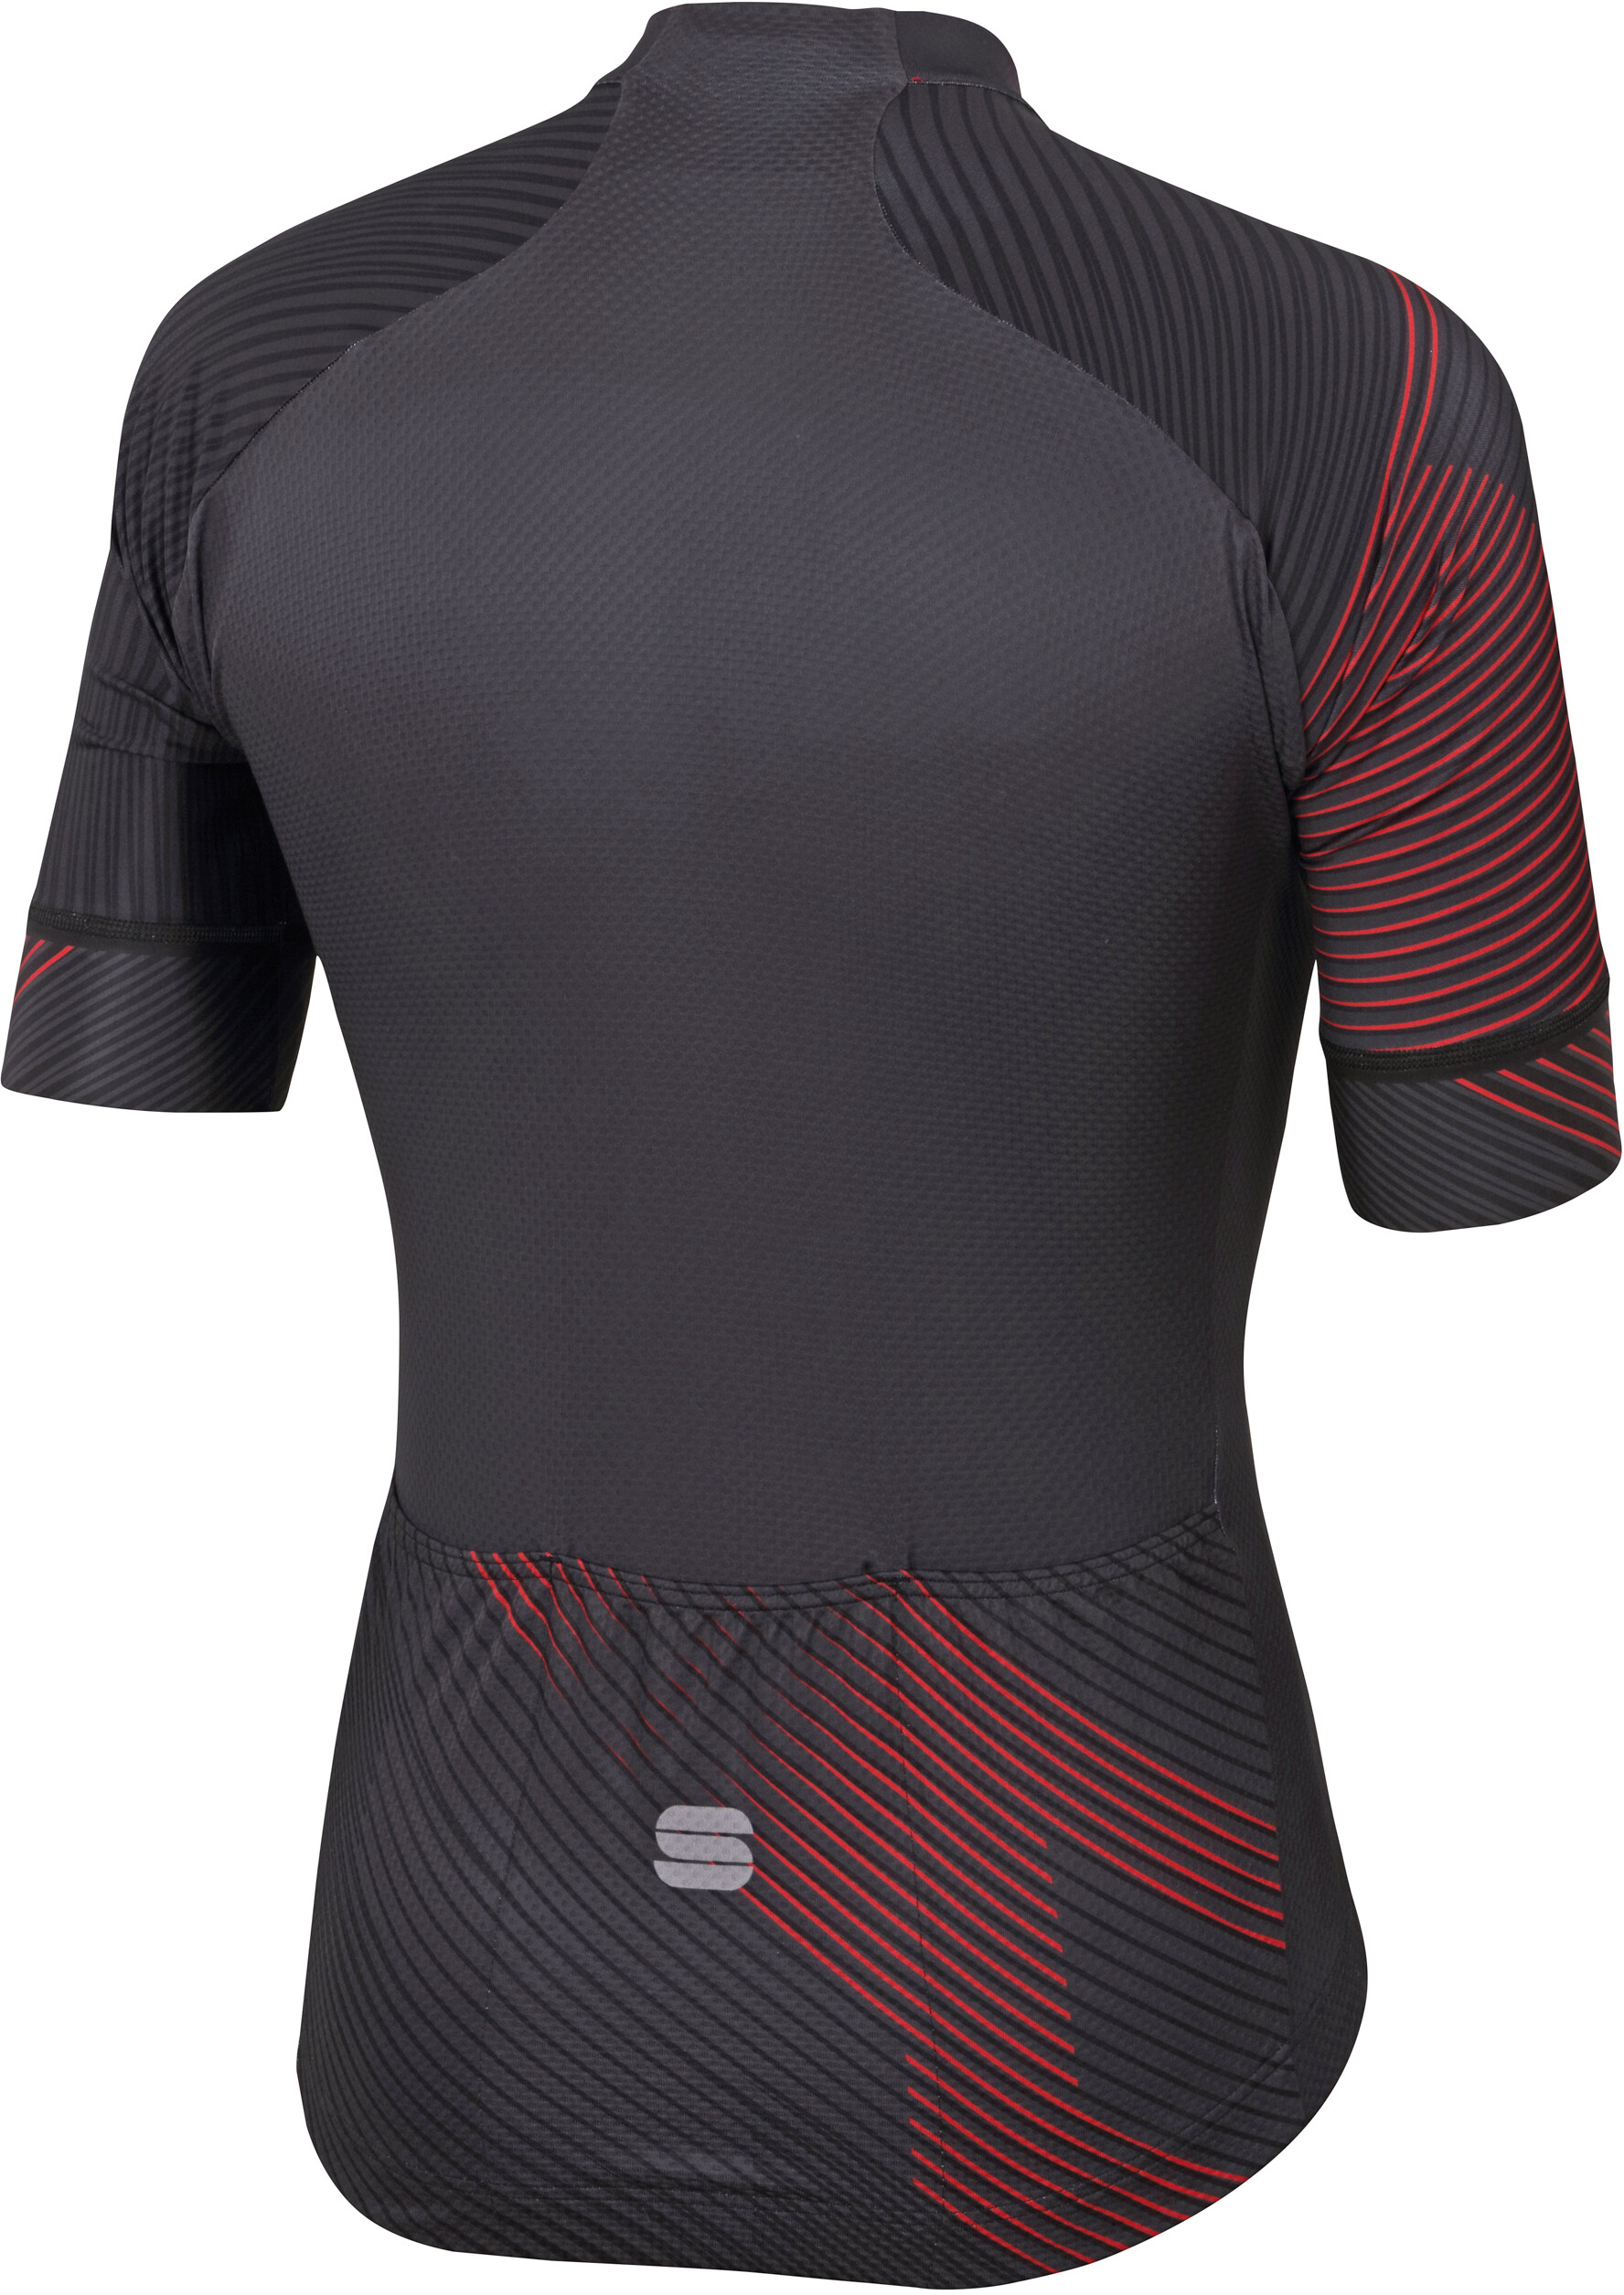 f0b7ec60b Sportful Bodyfit Team 2.0 Faster Bike Jersey Shortsleeve Men red black